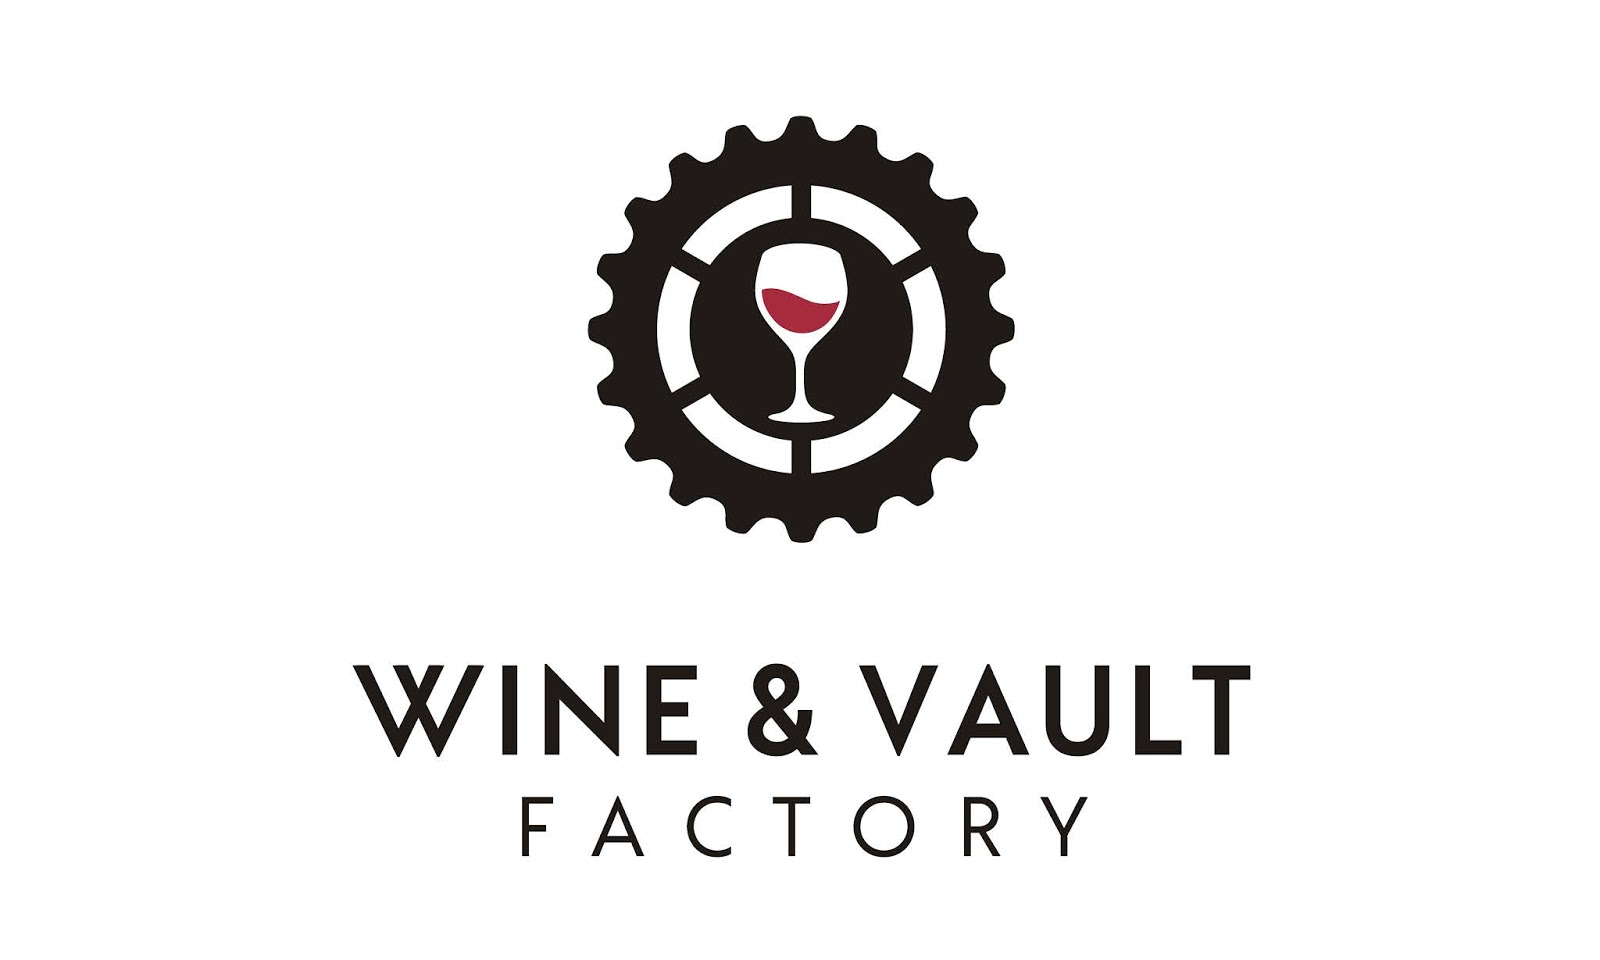 Wine Vault Factory Logo Design Free Download Vector CDR, AI, EPS and PNG Formats